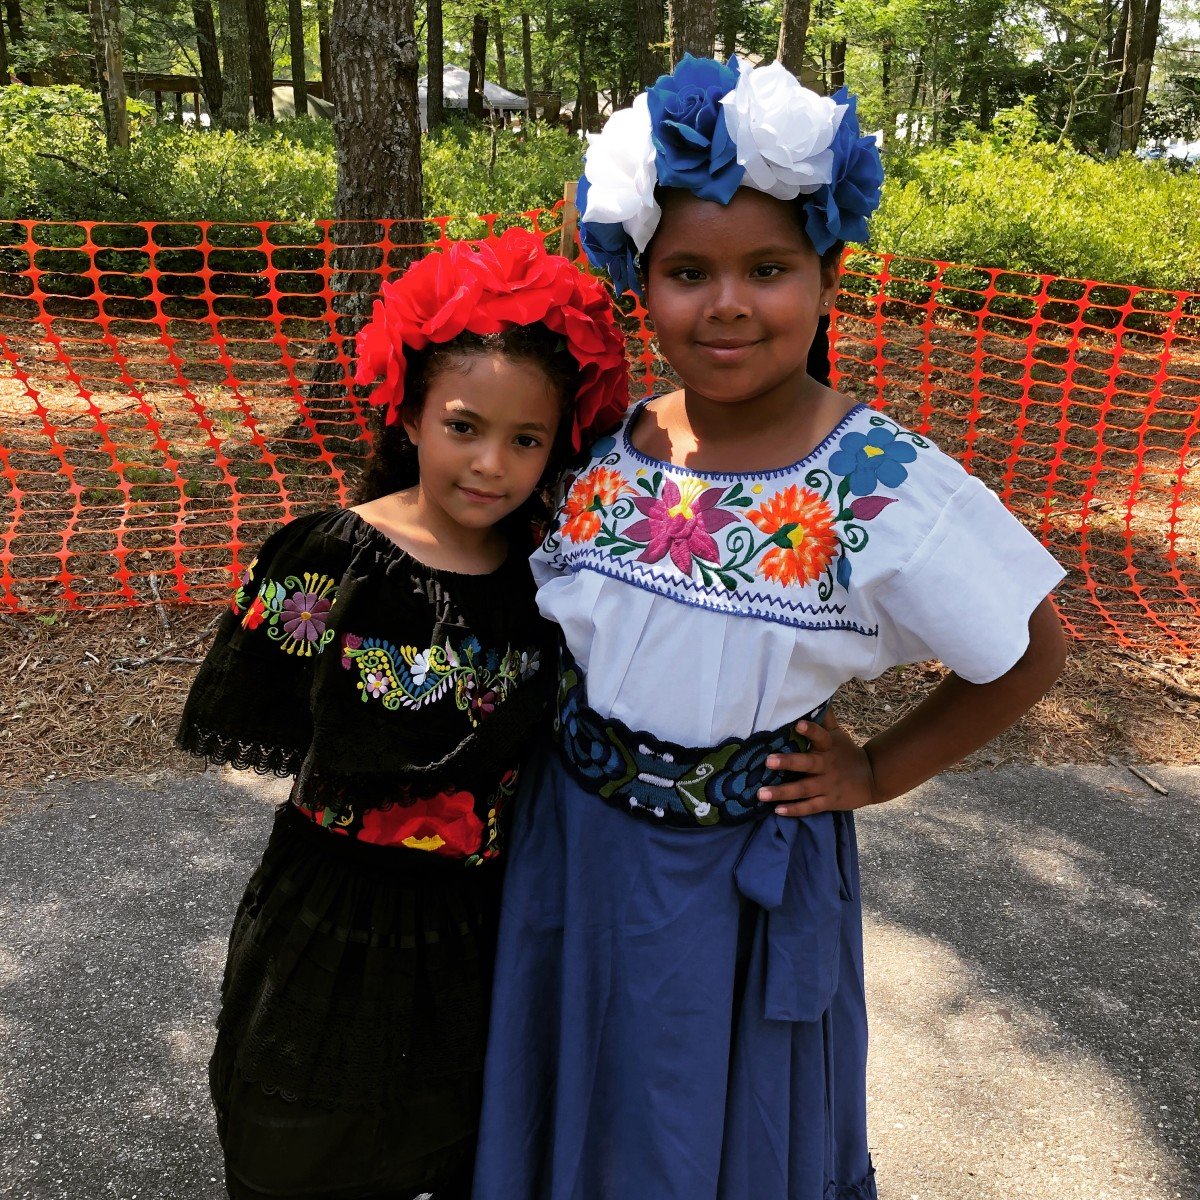 Fressia Jones (right) wore her regalia, which was gifted by her maternal grandmother Alba, for the first time and attended the 98th annual Mashpee Wampanoag Pow Wow, along with her cousin Mattisse Montes (left), in July of 2019. (Photo courtesy Rachael Devaney)